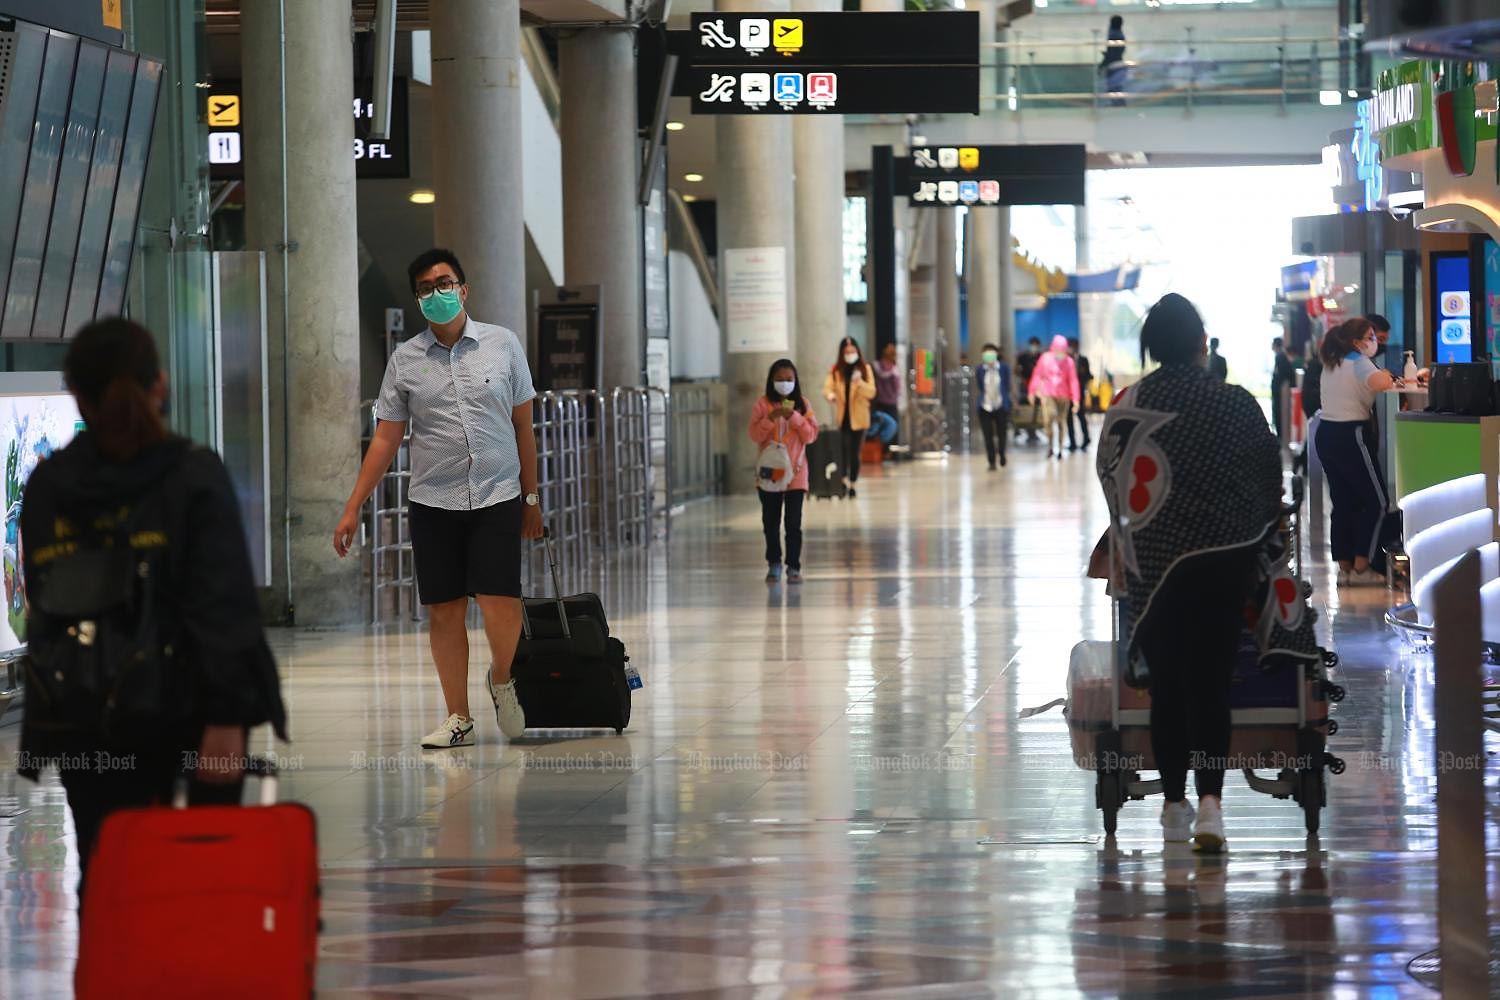 The central bank has revised down its foreign arrivals forecast for next year from the previous 16.2 million to 9 million. (Photo by Somchai Poomlard)